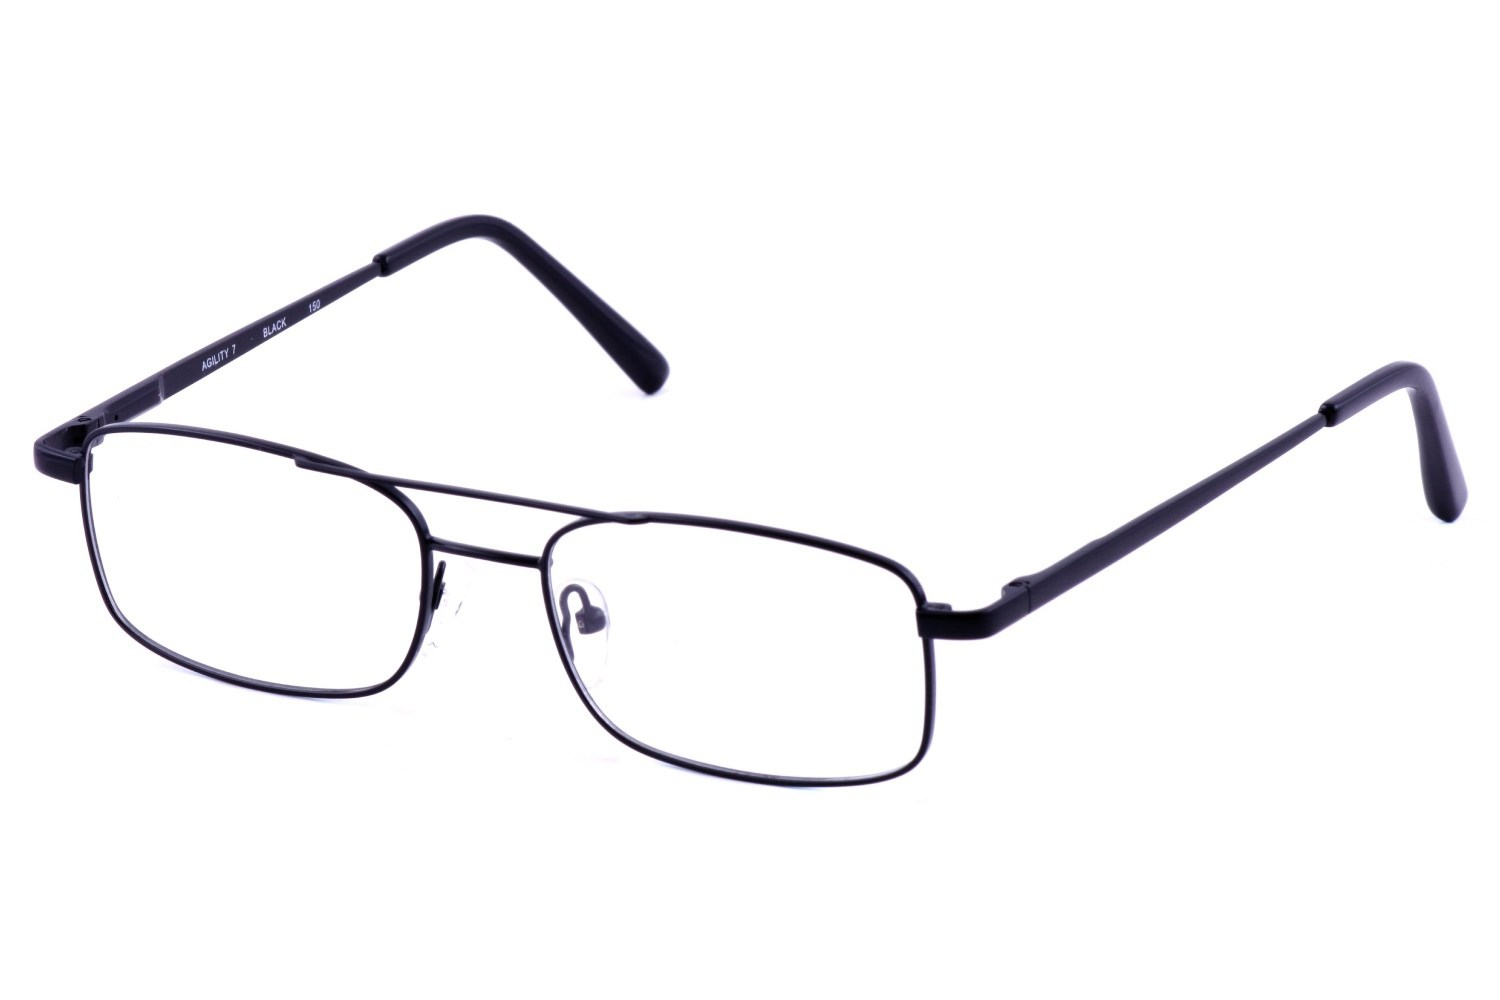 Agility 7 Prescription Eyeglasses Frames